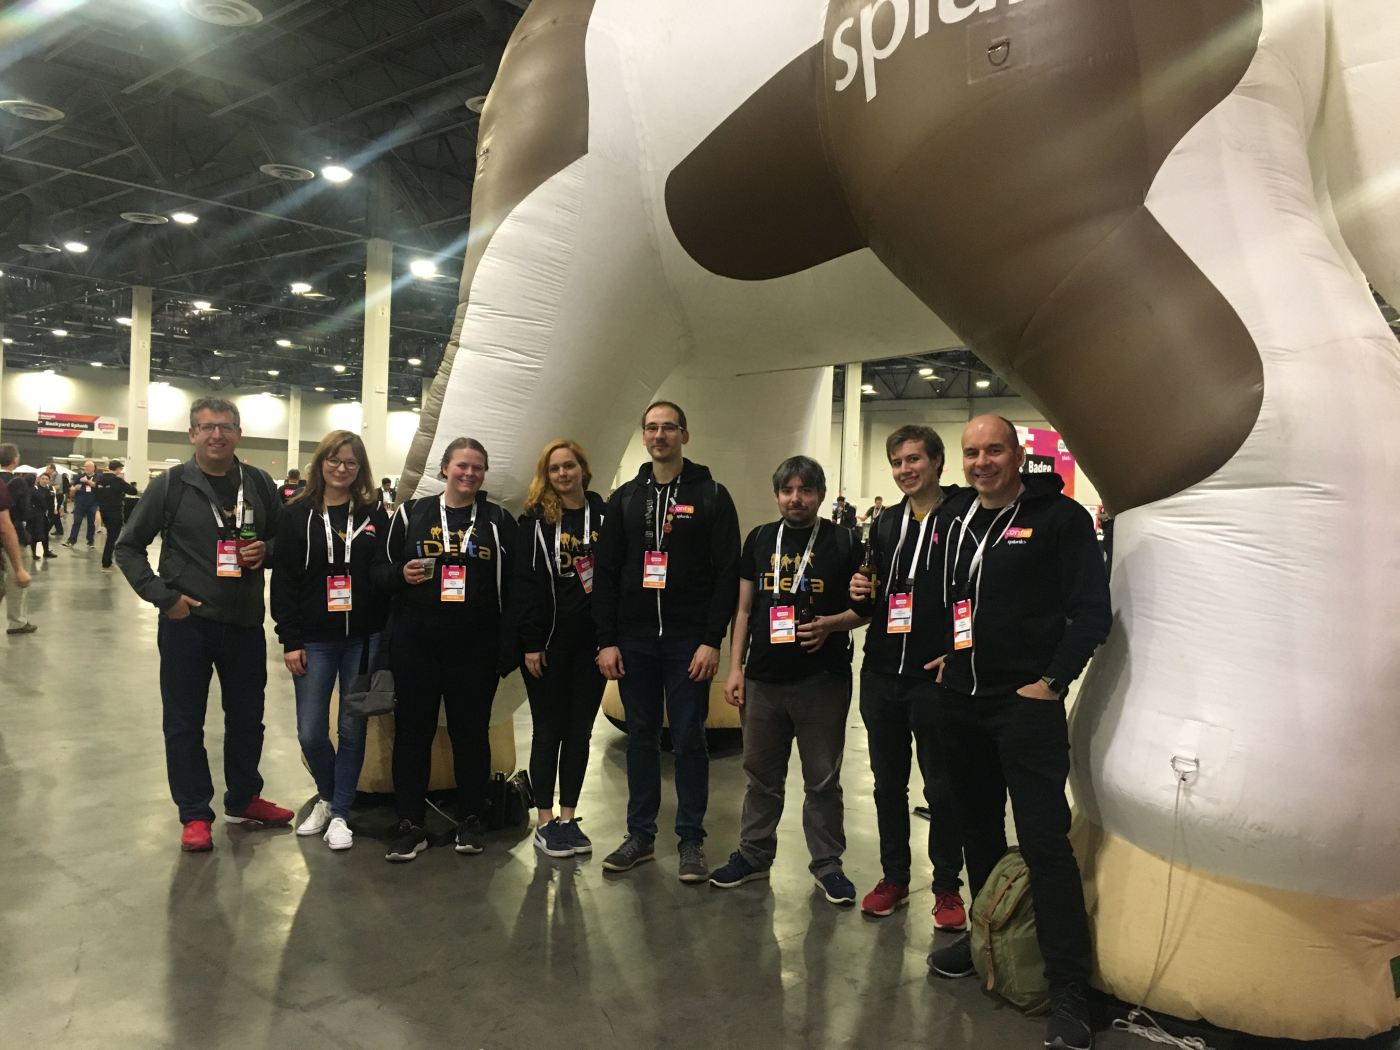 iDelta at Splunk conf19, in front of a giant Buttercup the horse